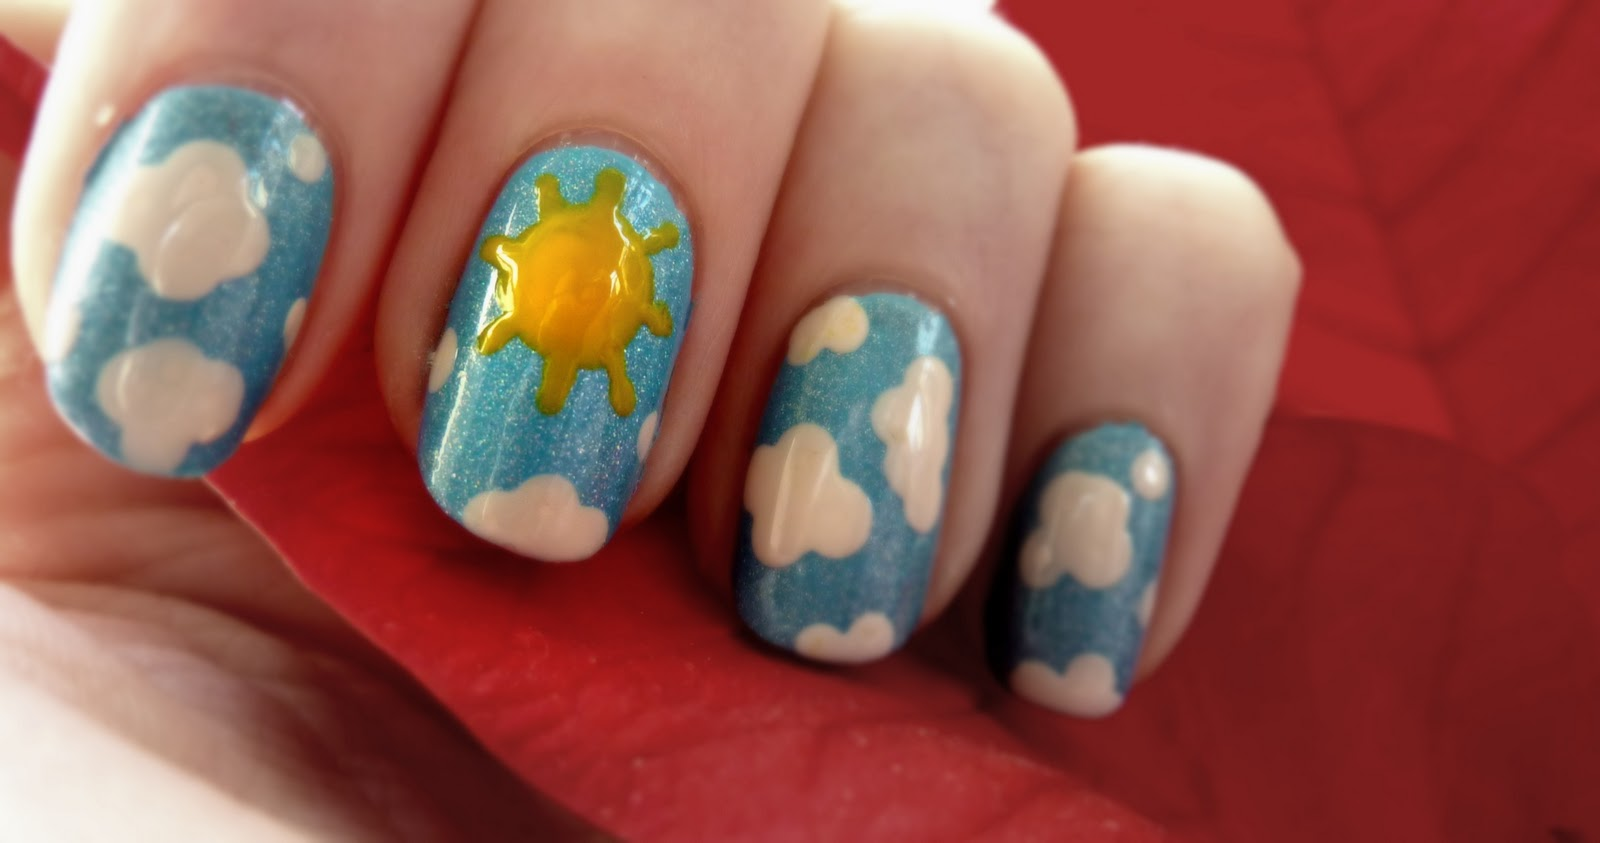 The Weather Never Changes Always Rainy Cloudy Cold Miserable Sooooo What Better To Do Than Some Sunny Sky Designs On My Nails